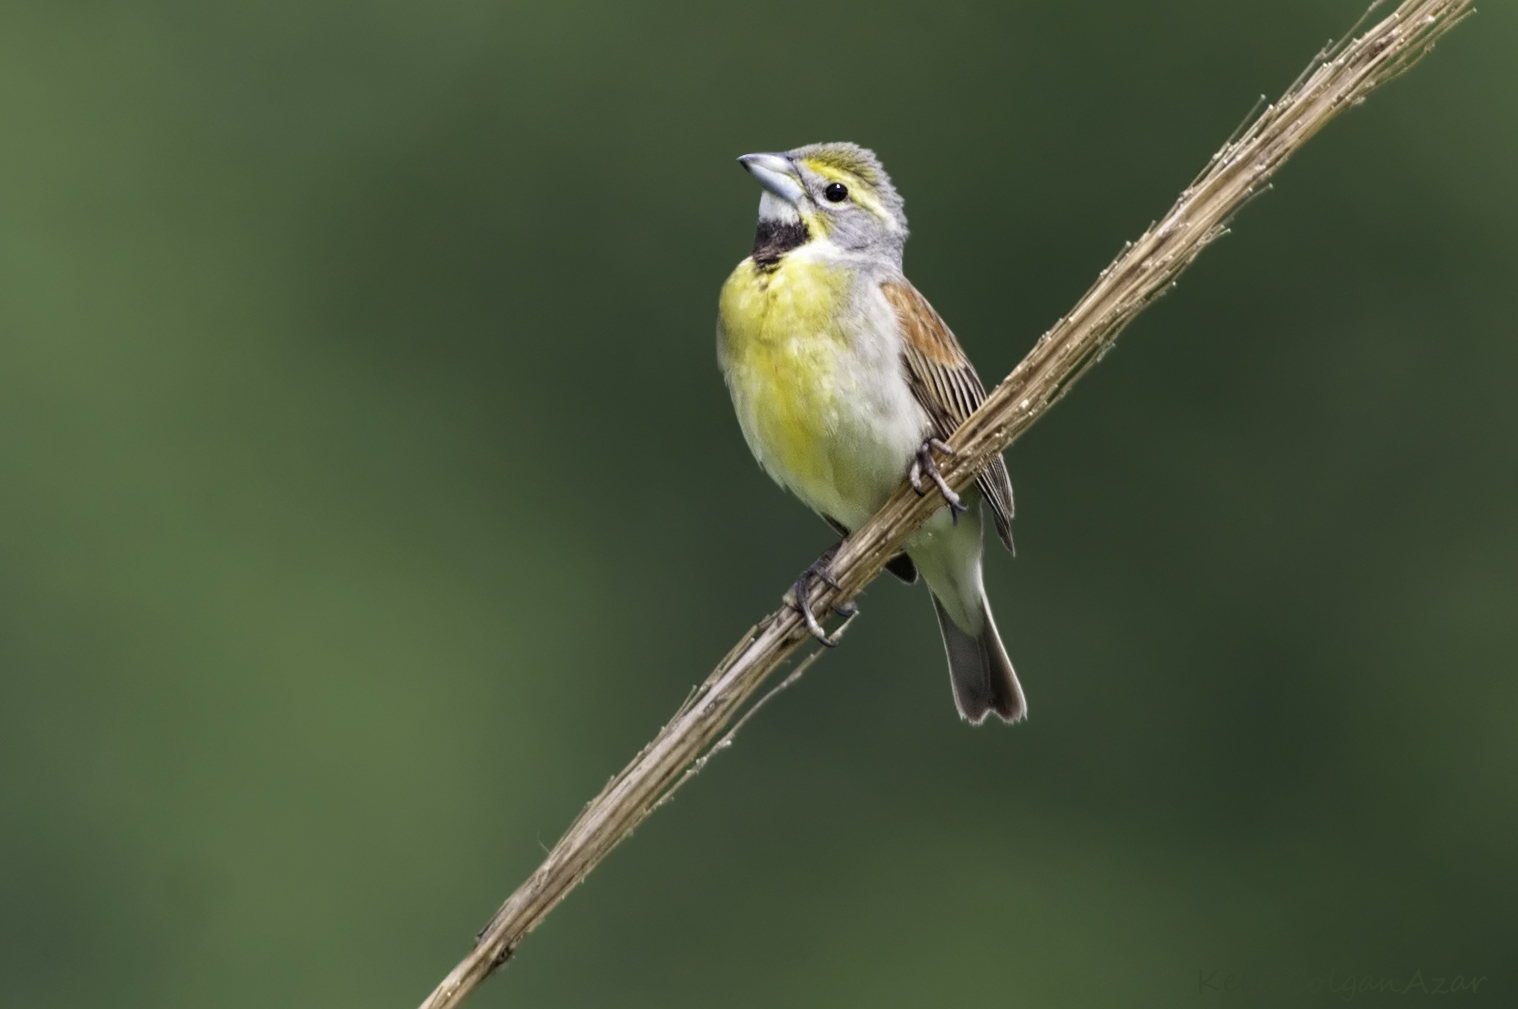 Dickcissel, photo by Kelly Colgan Azar